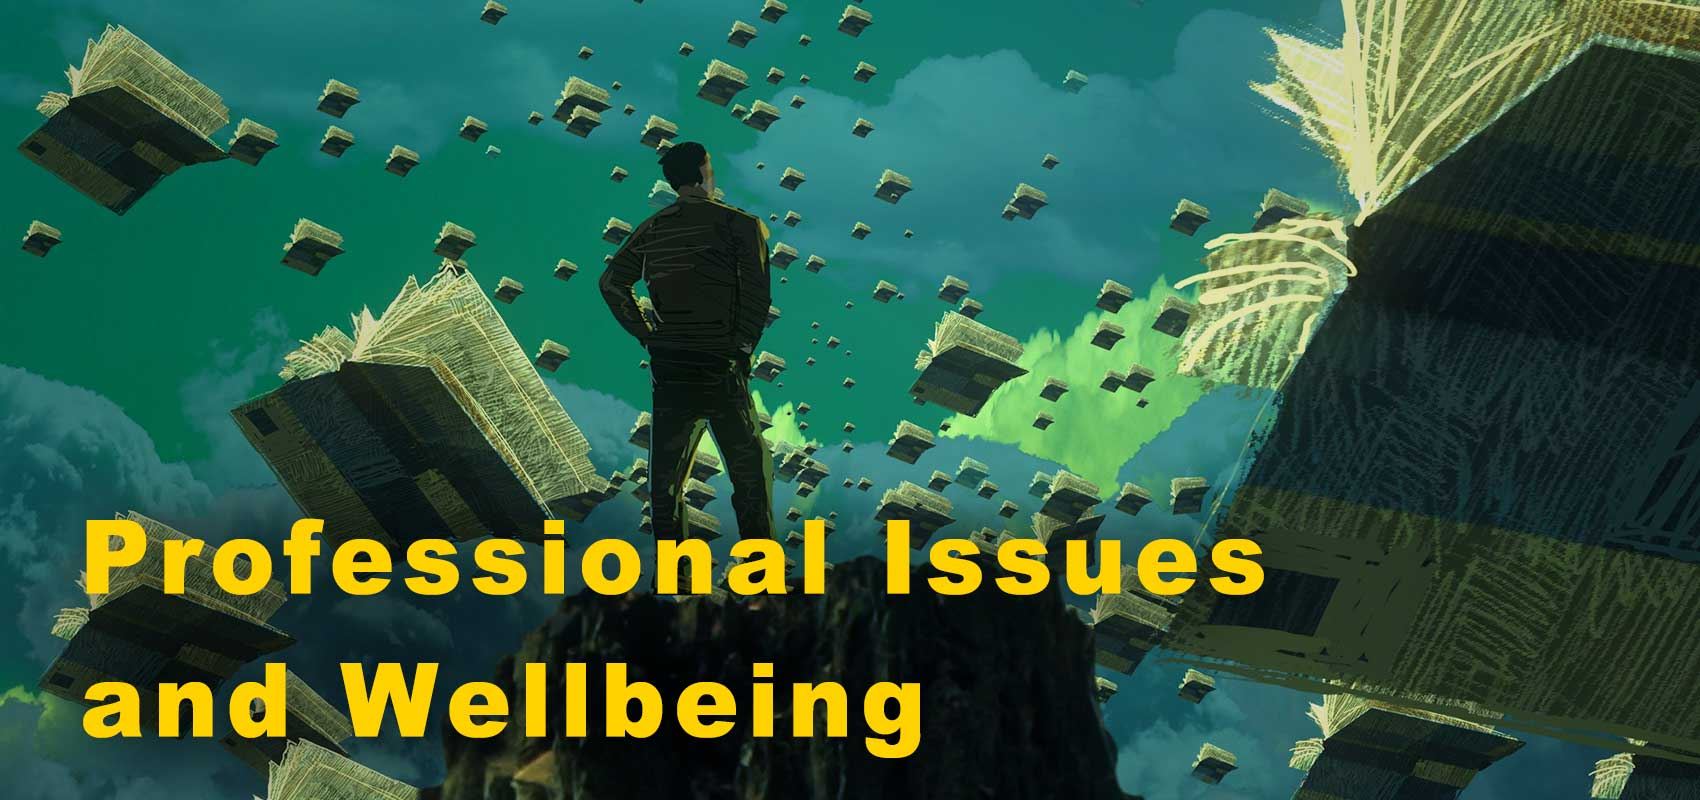 Professional Issues and Wellbeing